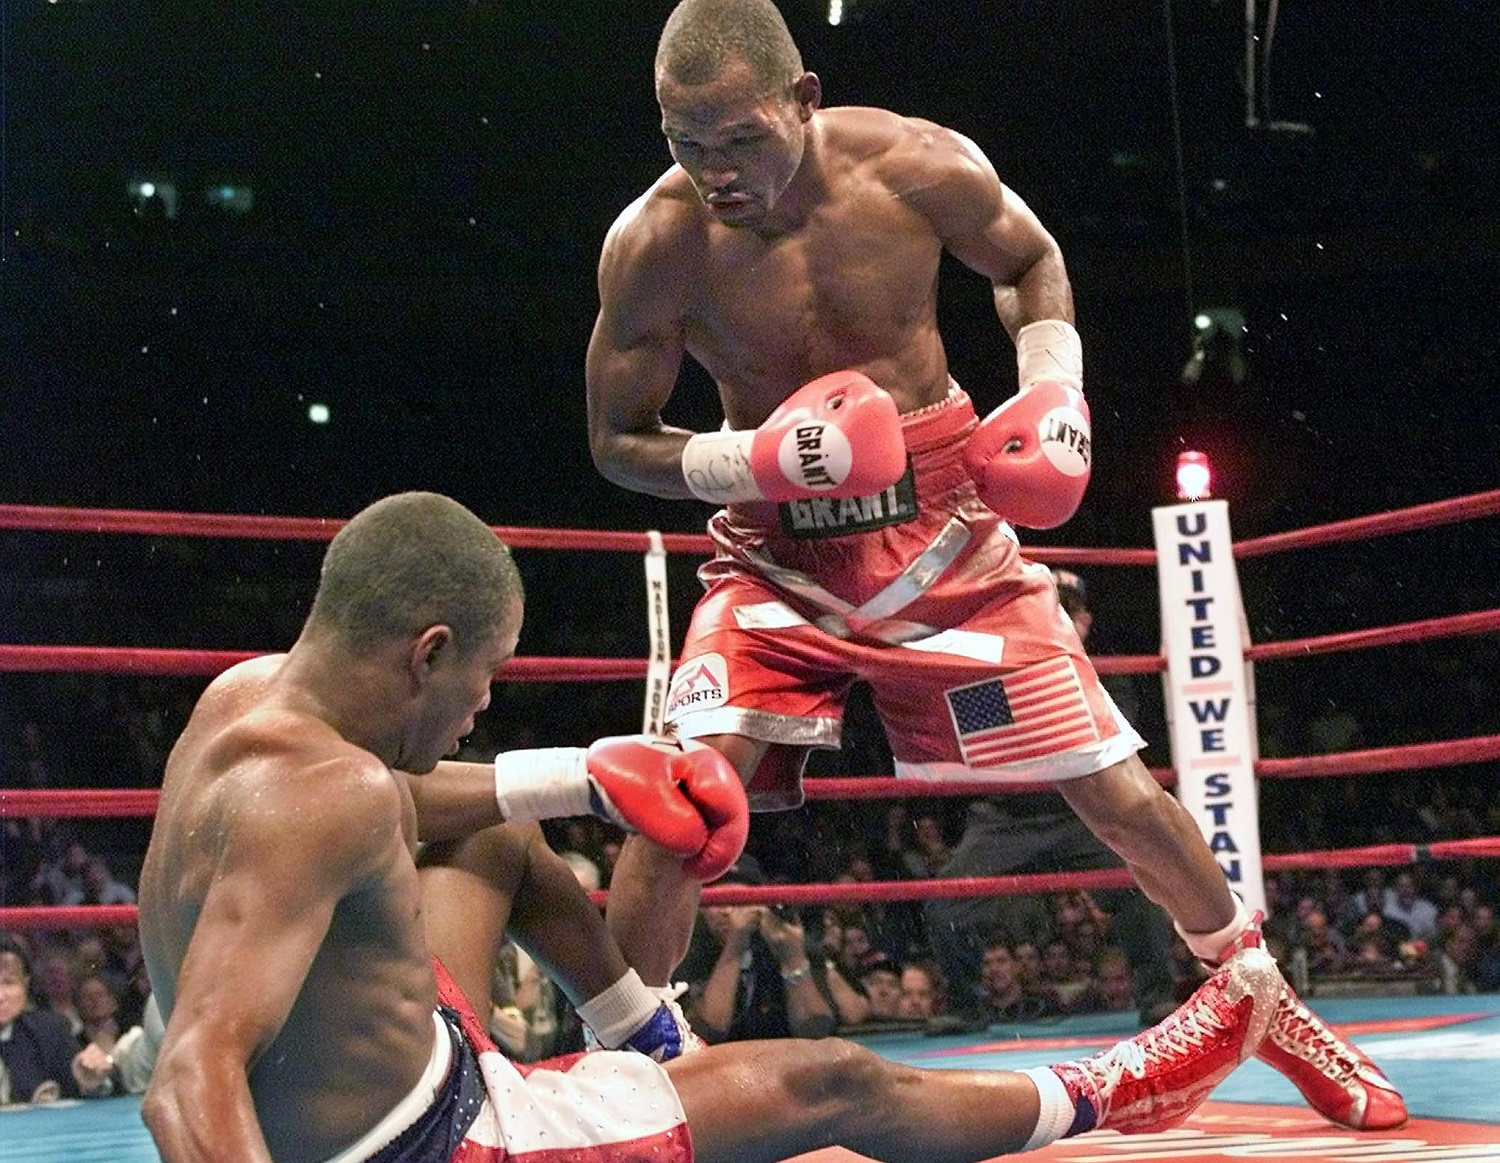 Boxing Legend Bernard Hopkins Painted a $100,000 Ad on His Back Before Beating a 40-0 World Champion